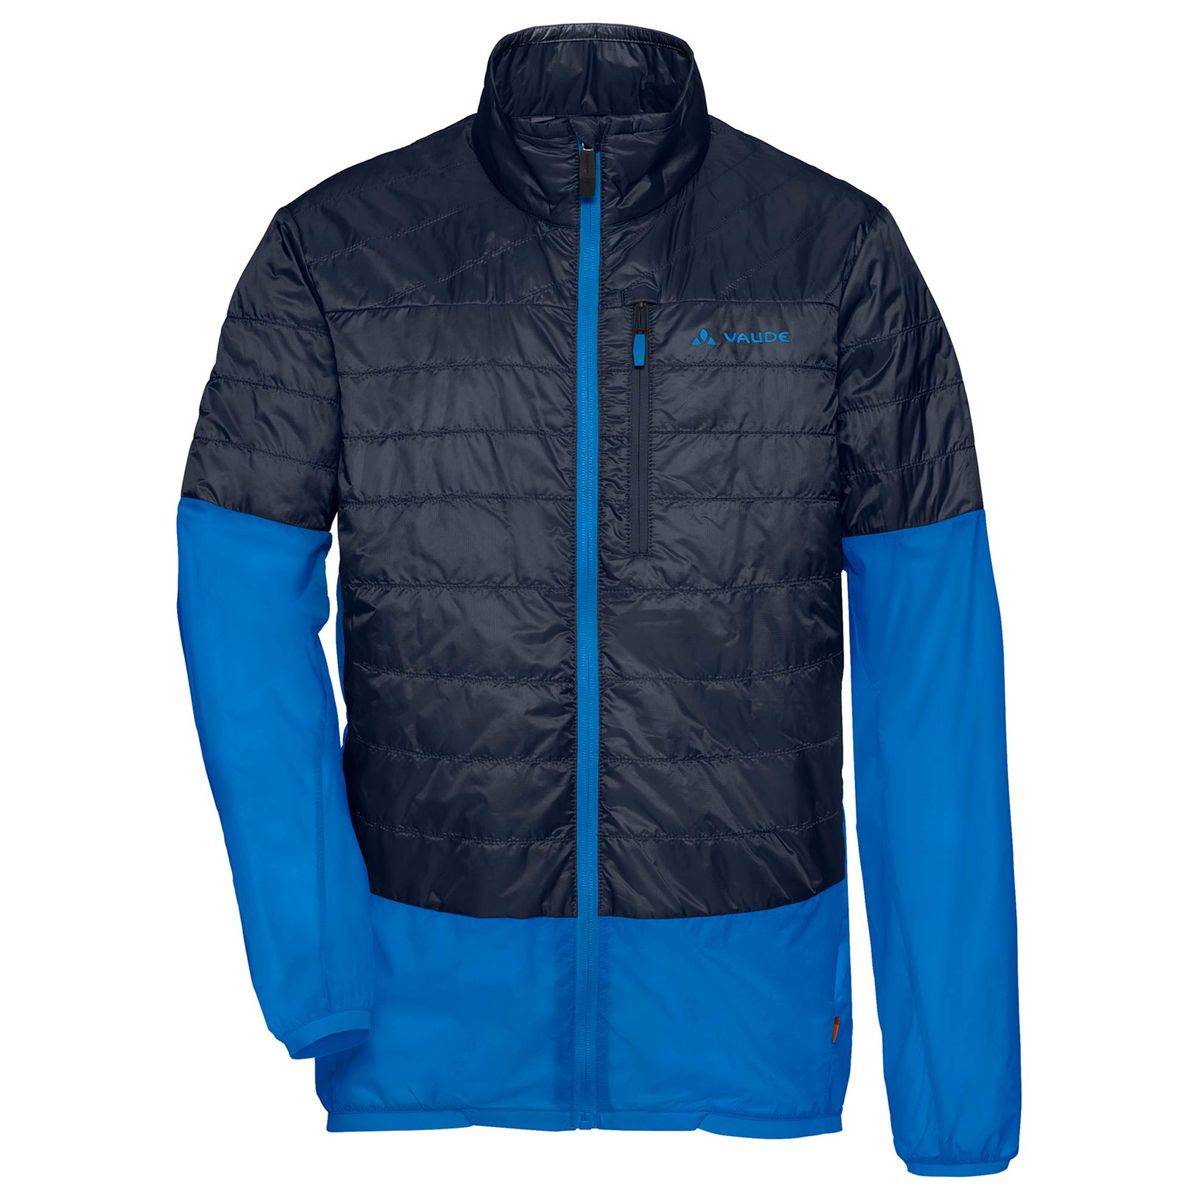 Men's Moab UL Hybrid Jacket insulated jacket